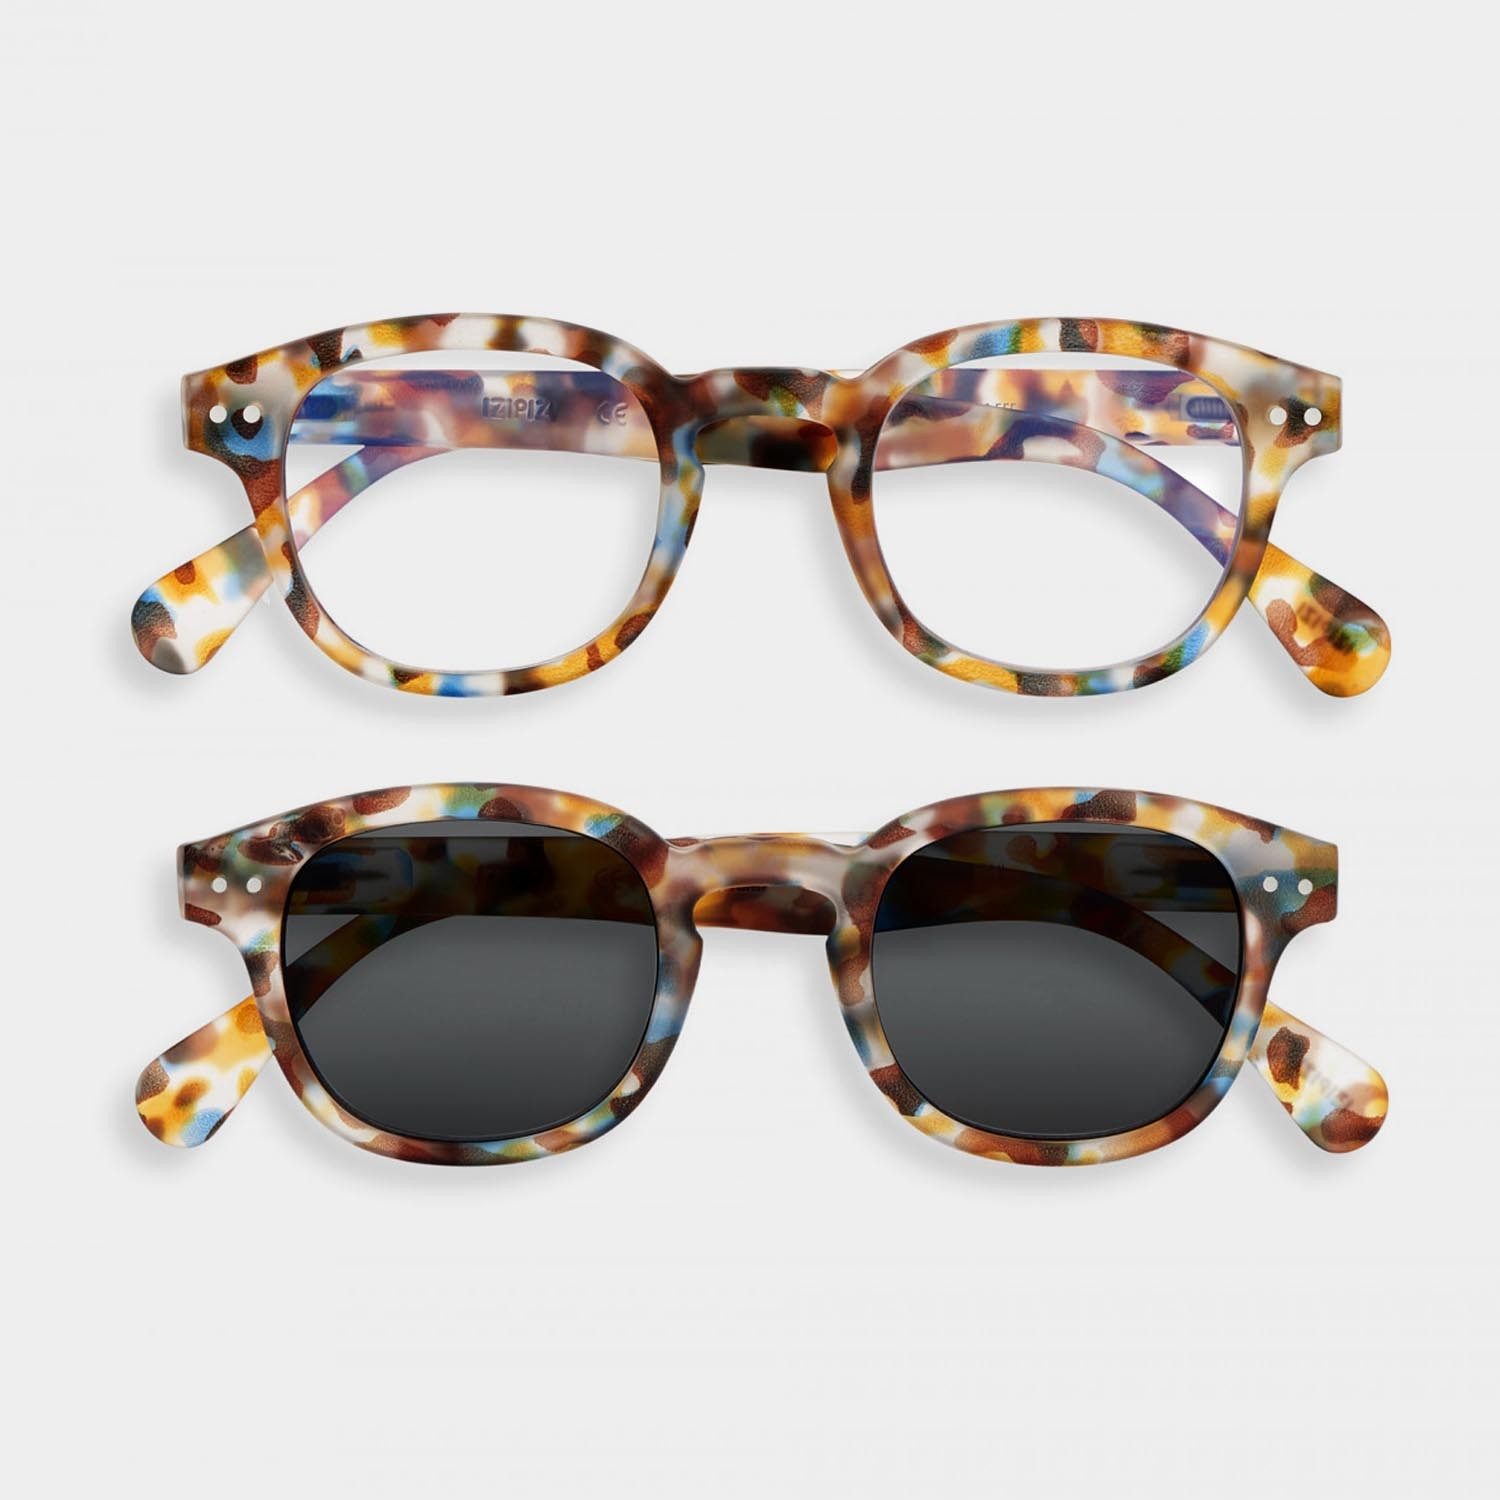 SCREEN and SUN Glasses Duo #C, Blue Tortoise